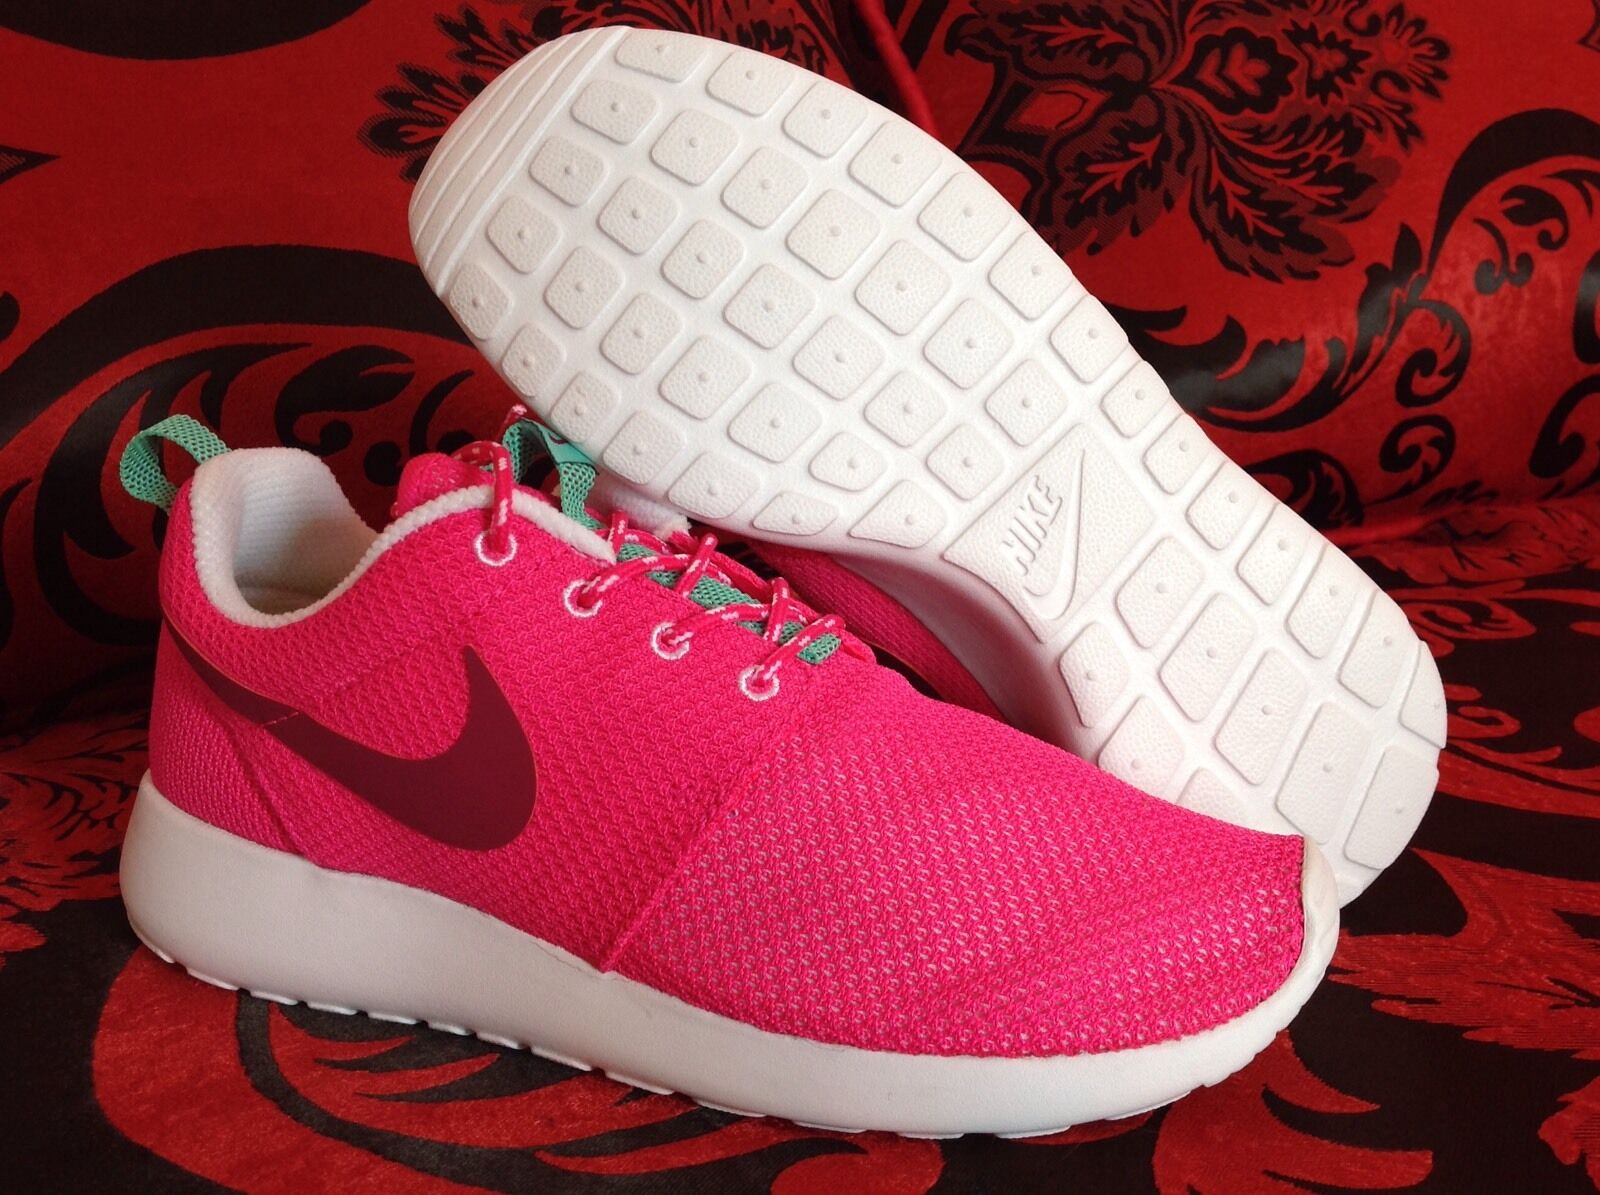 Nike Roshe Run women running crossing Shoes 100% AUTHENTIC SIZE 8 & 9.5 US